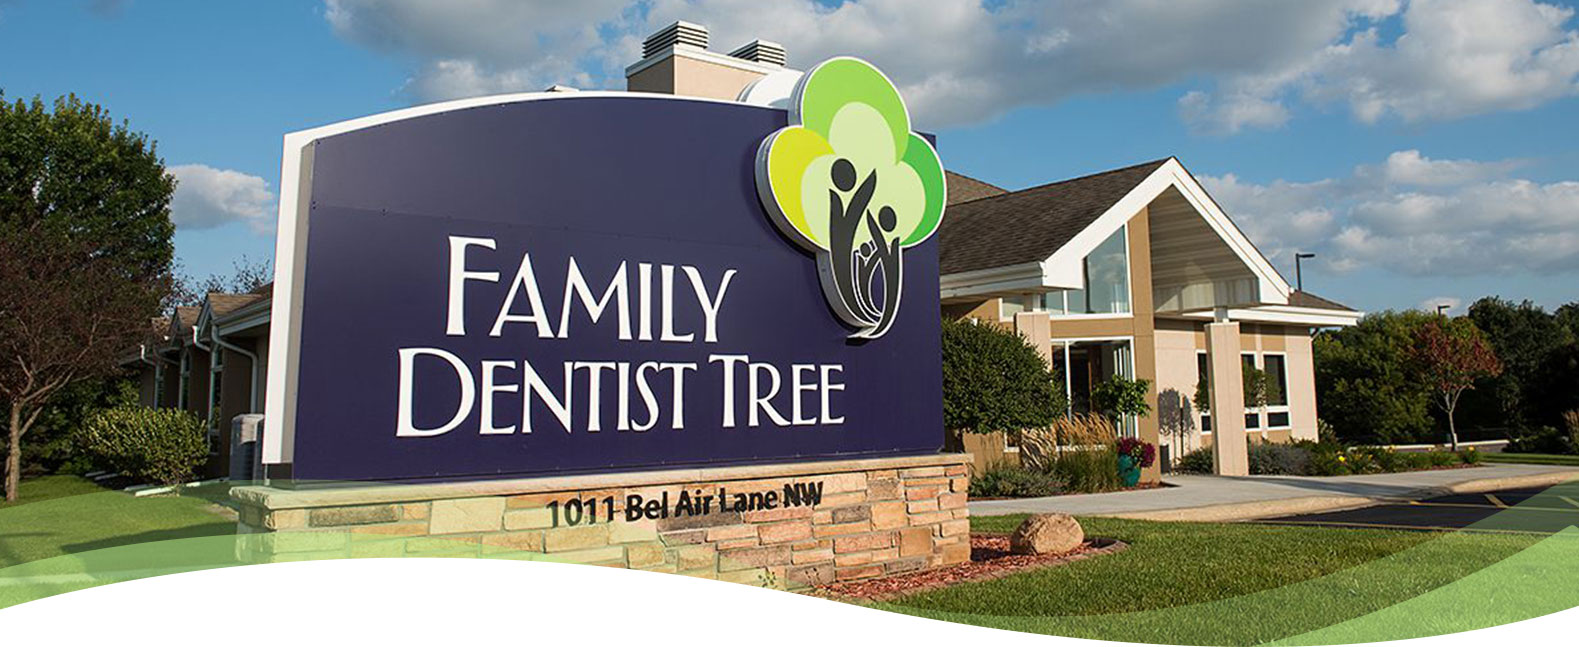 family dentist tree front